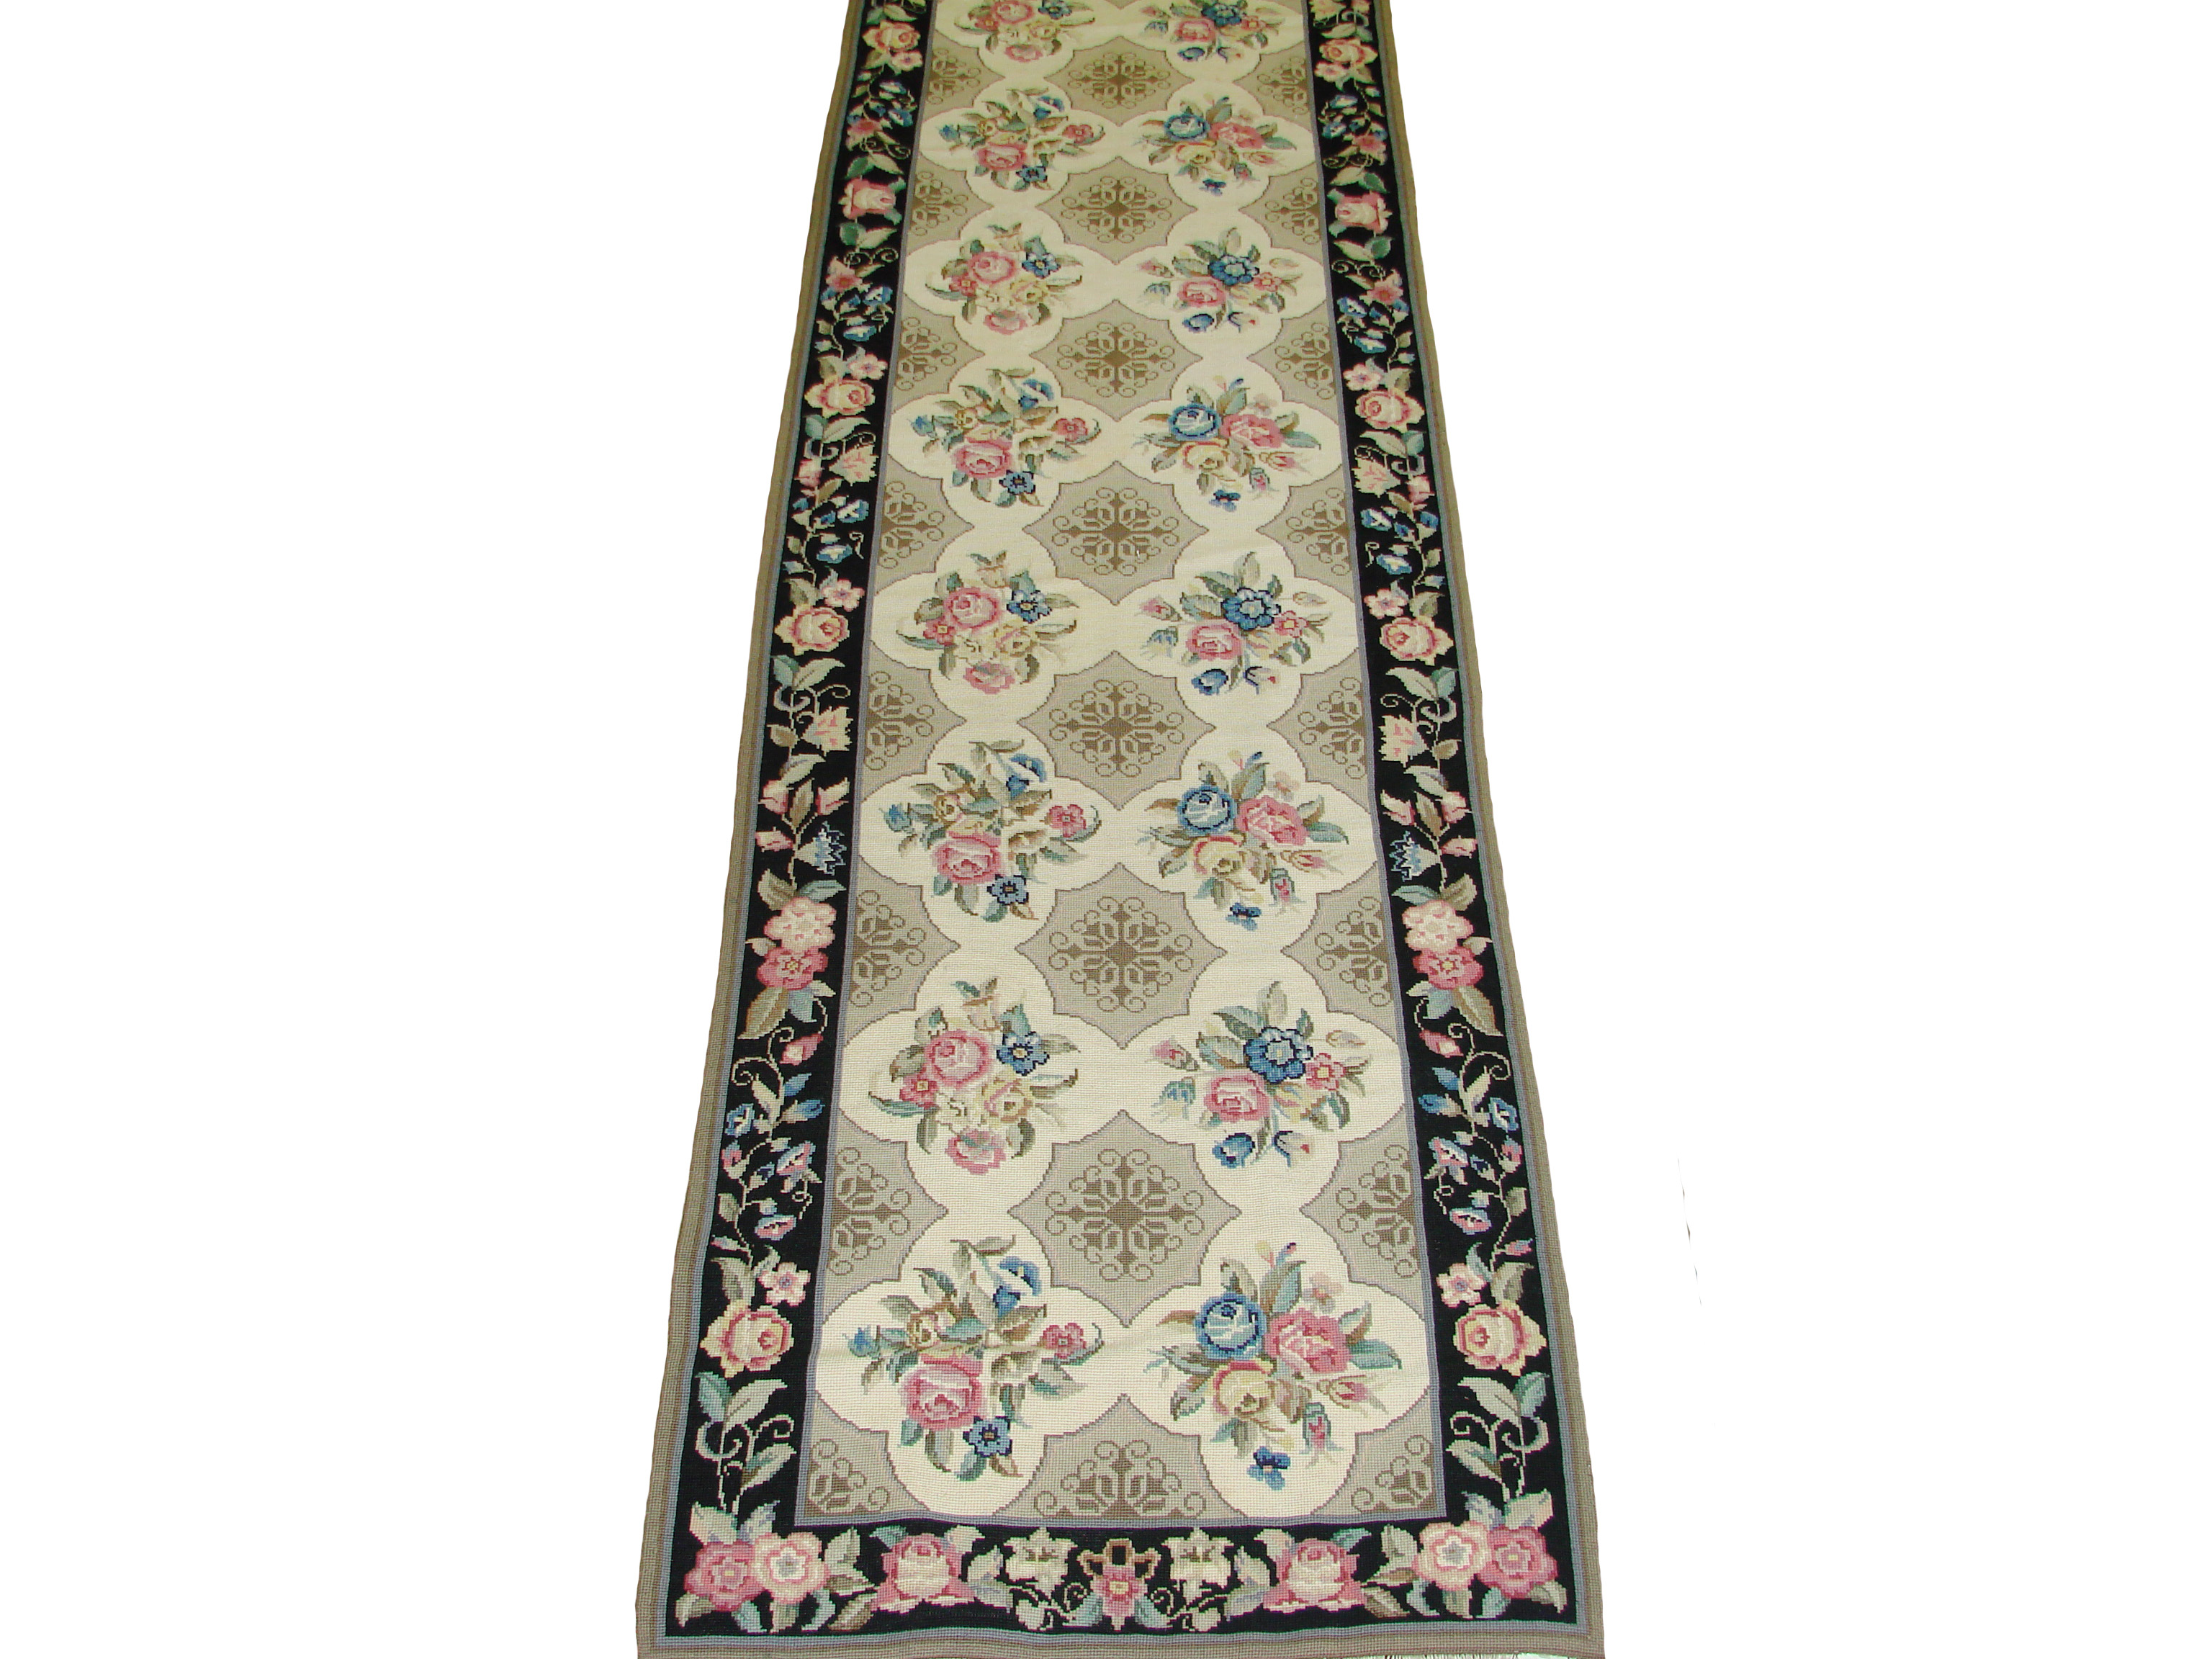 12 Runner Traditional Hand Knotted Wool Area Rug - MR20185